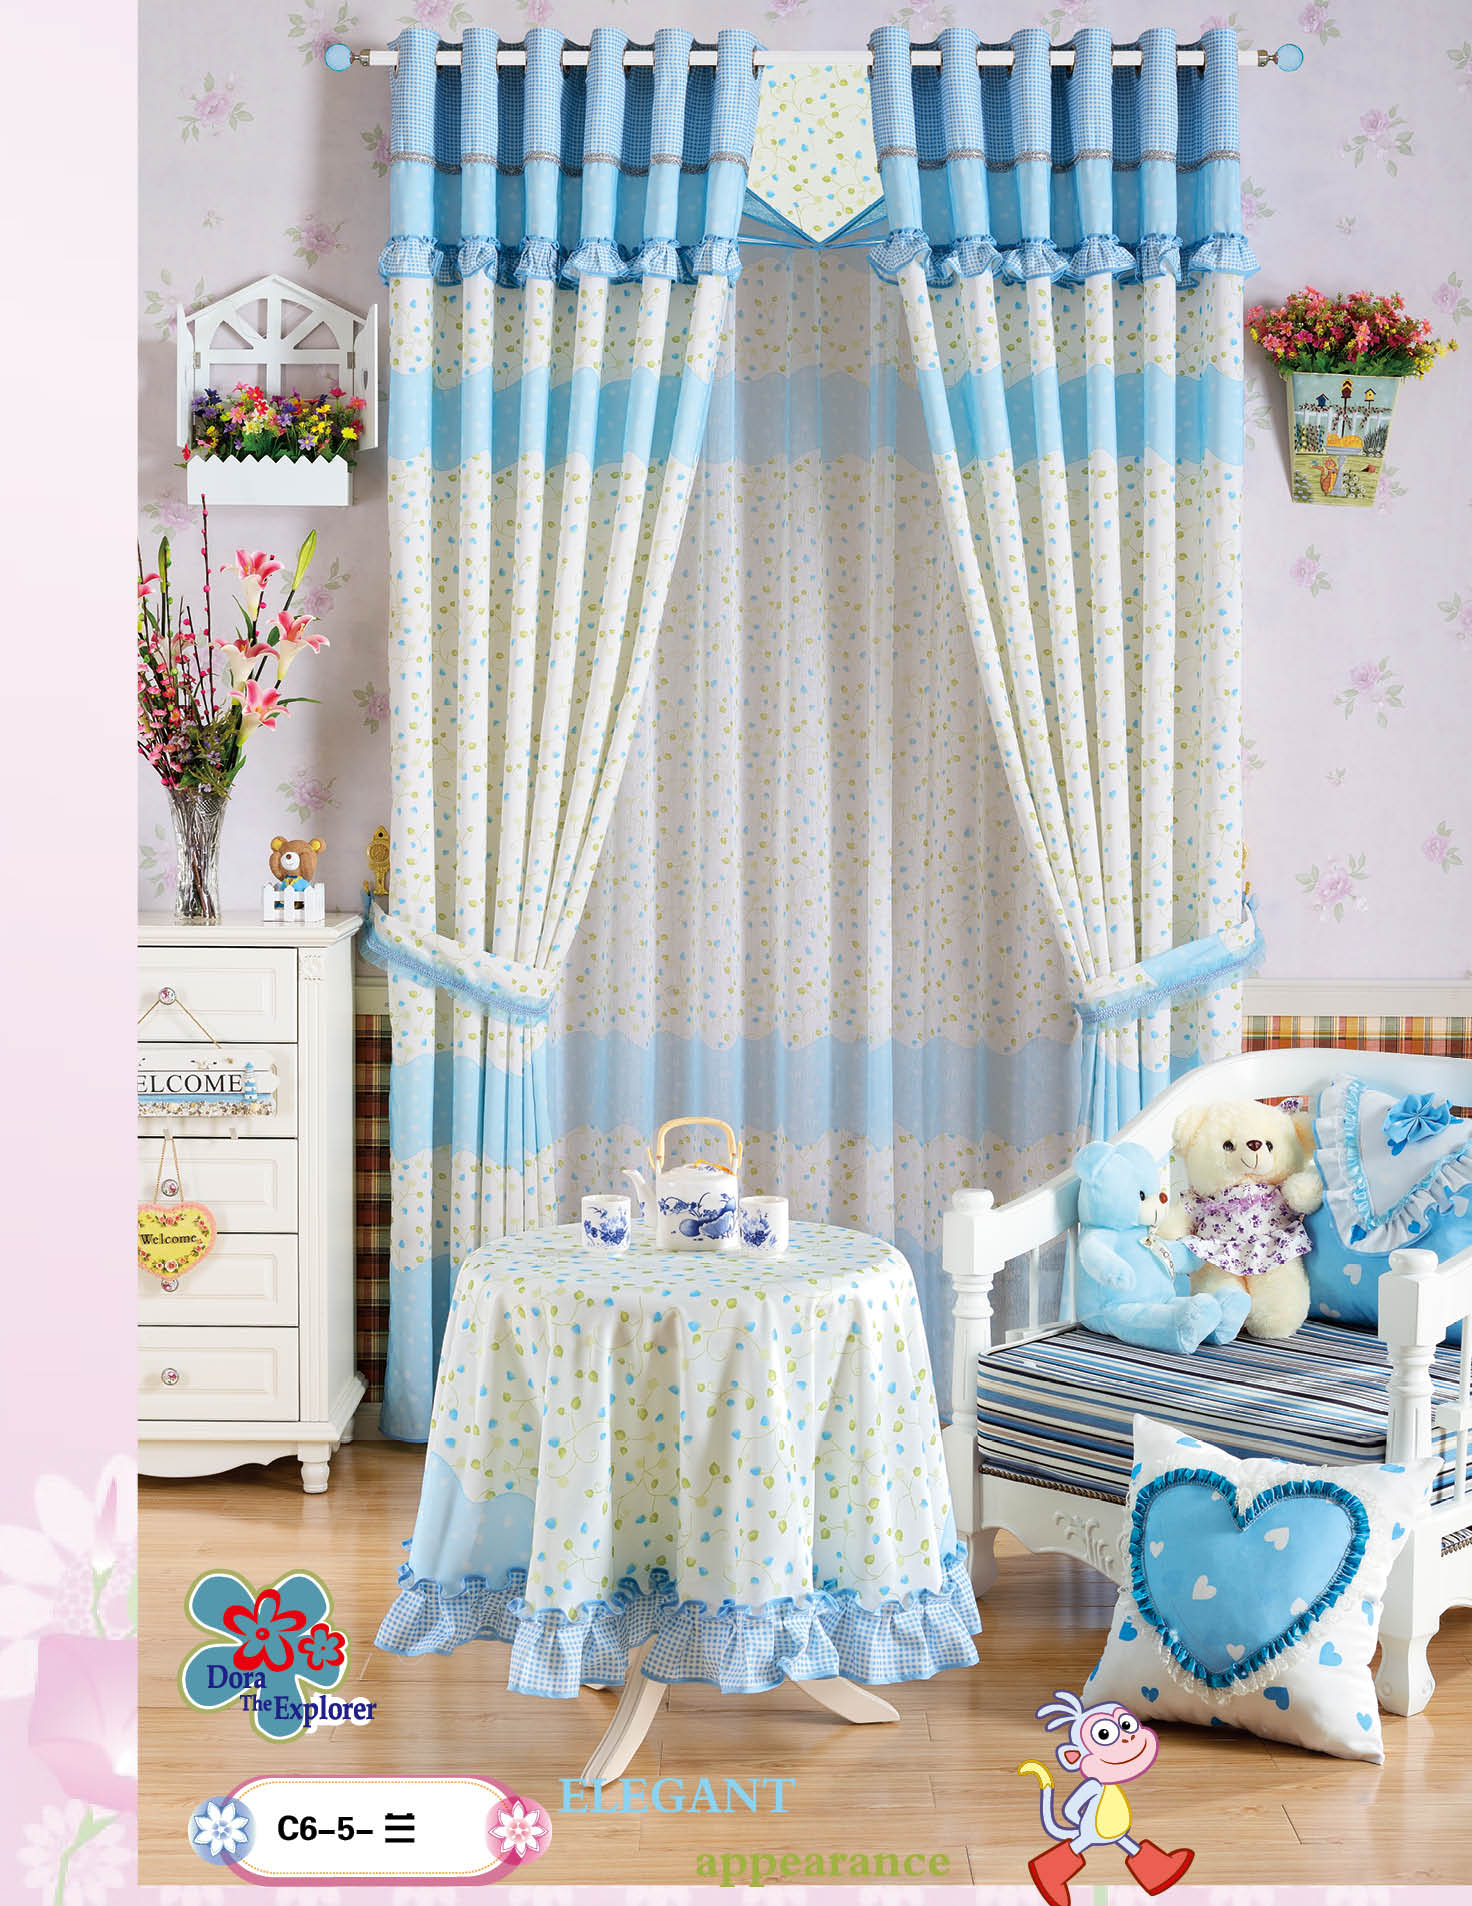 Boy nursery curtains - Online Shop Child Curtain Cartoon Curtain Ploughboys Piaochuang Baby Boy Girl Curtain Finished Product Aliexpress Mobile